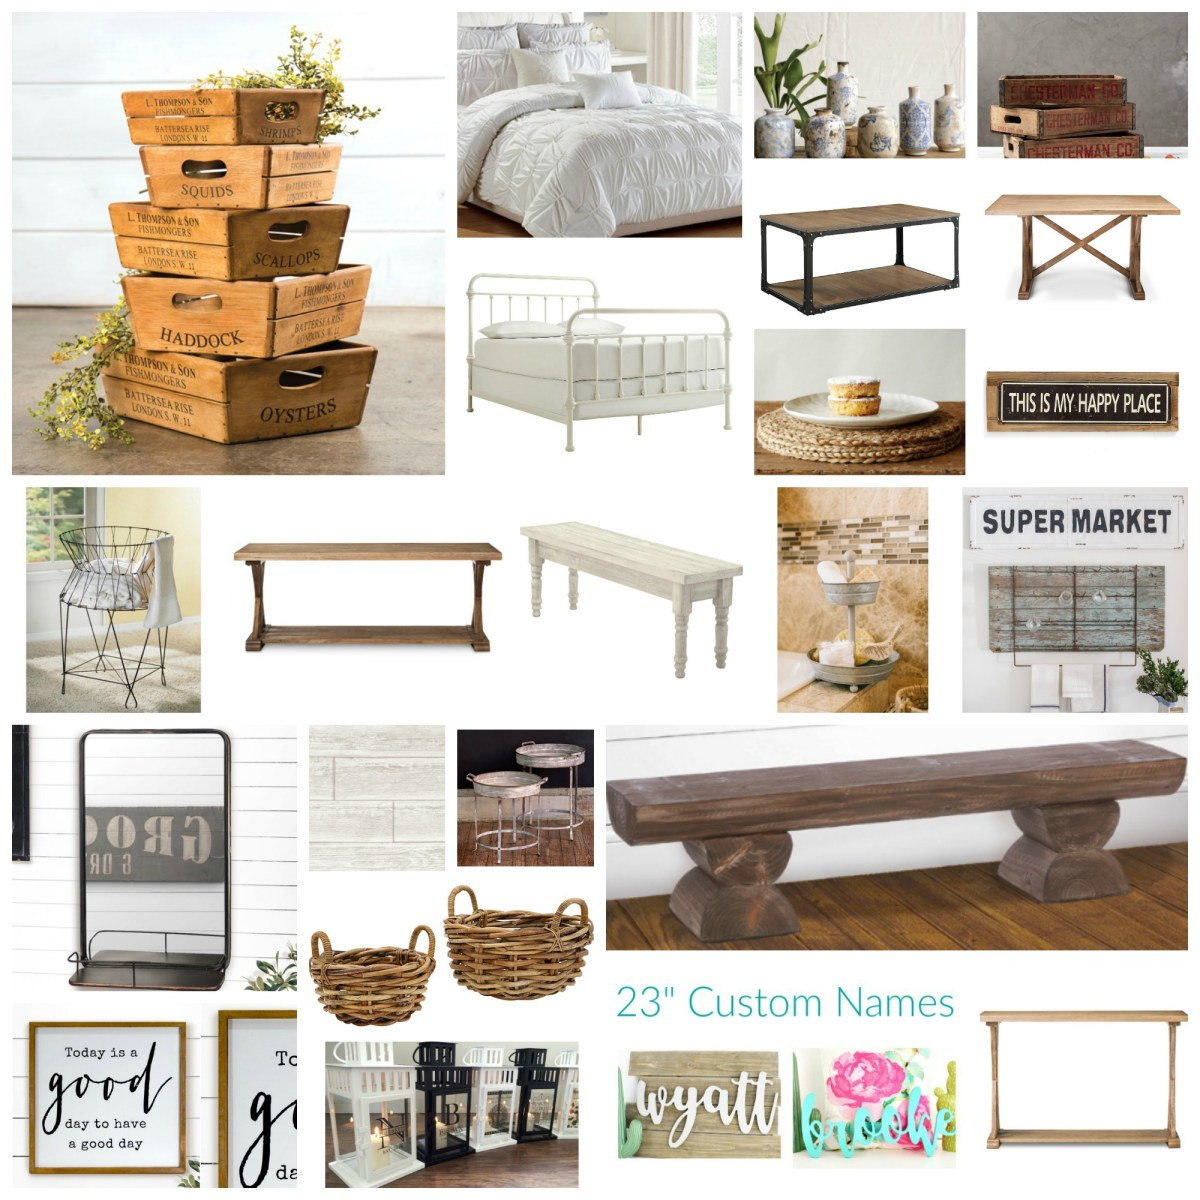 Home Decor Daily Deals: Wednesday, March 15, 2017